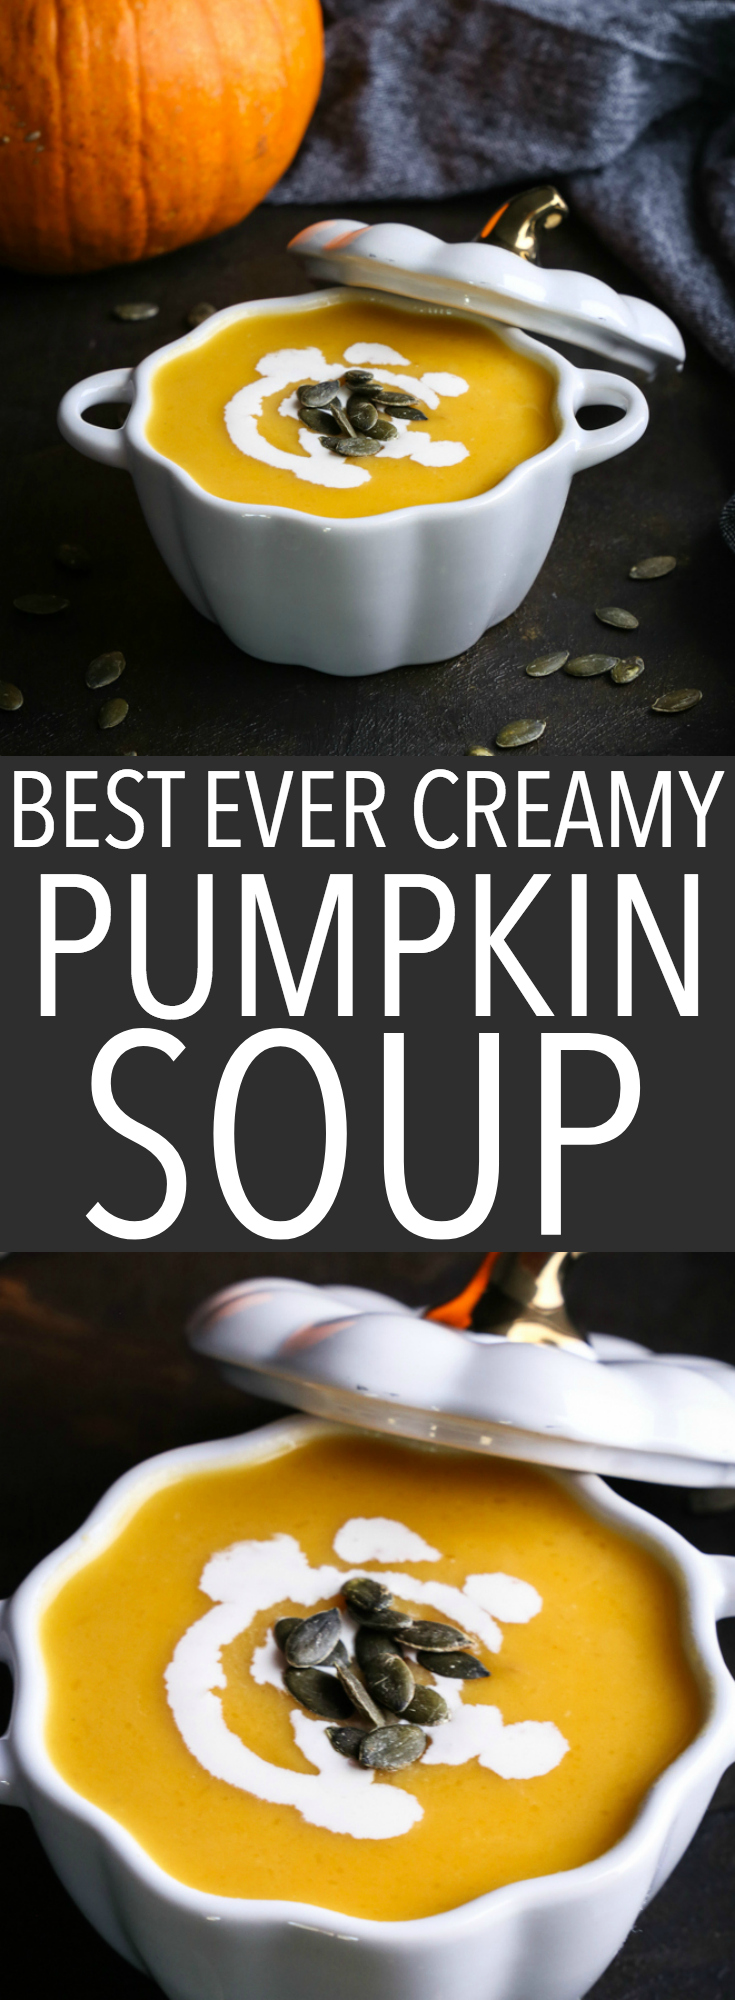 This German-Style Pumpkin Soup is velvety smooth and ultra creamy! It's made with fresh roasted pumpkin and a secret ingredient! Recipe from thebusybaker.ca #german #pumpkin #soup #kurbiscremesuppe #germanfood #international #culture #creamy #fall #autumn #comfortfood via @busybakerblog